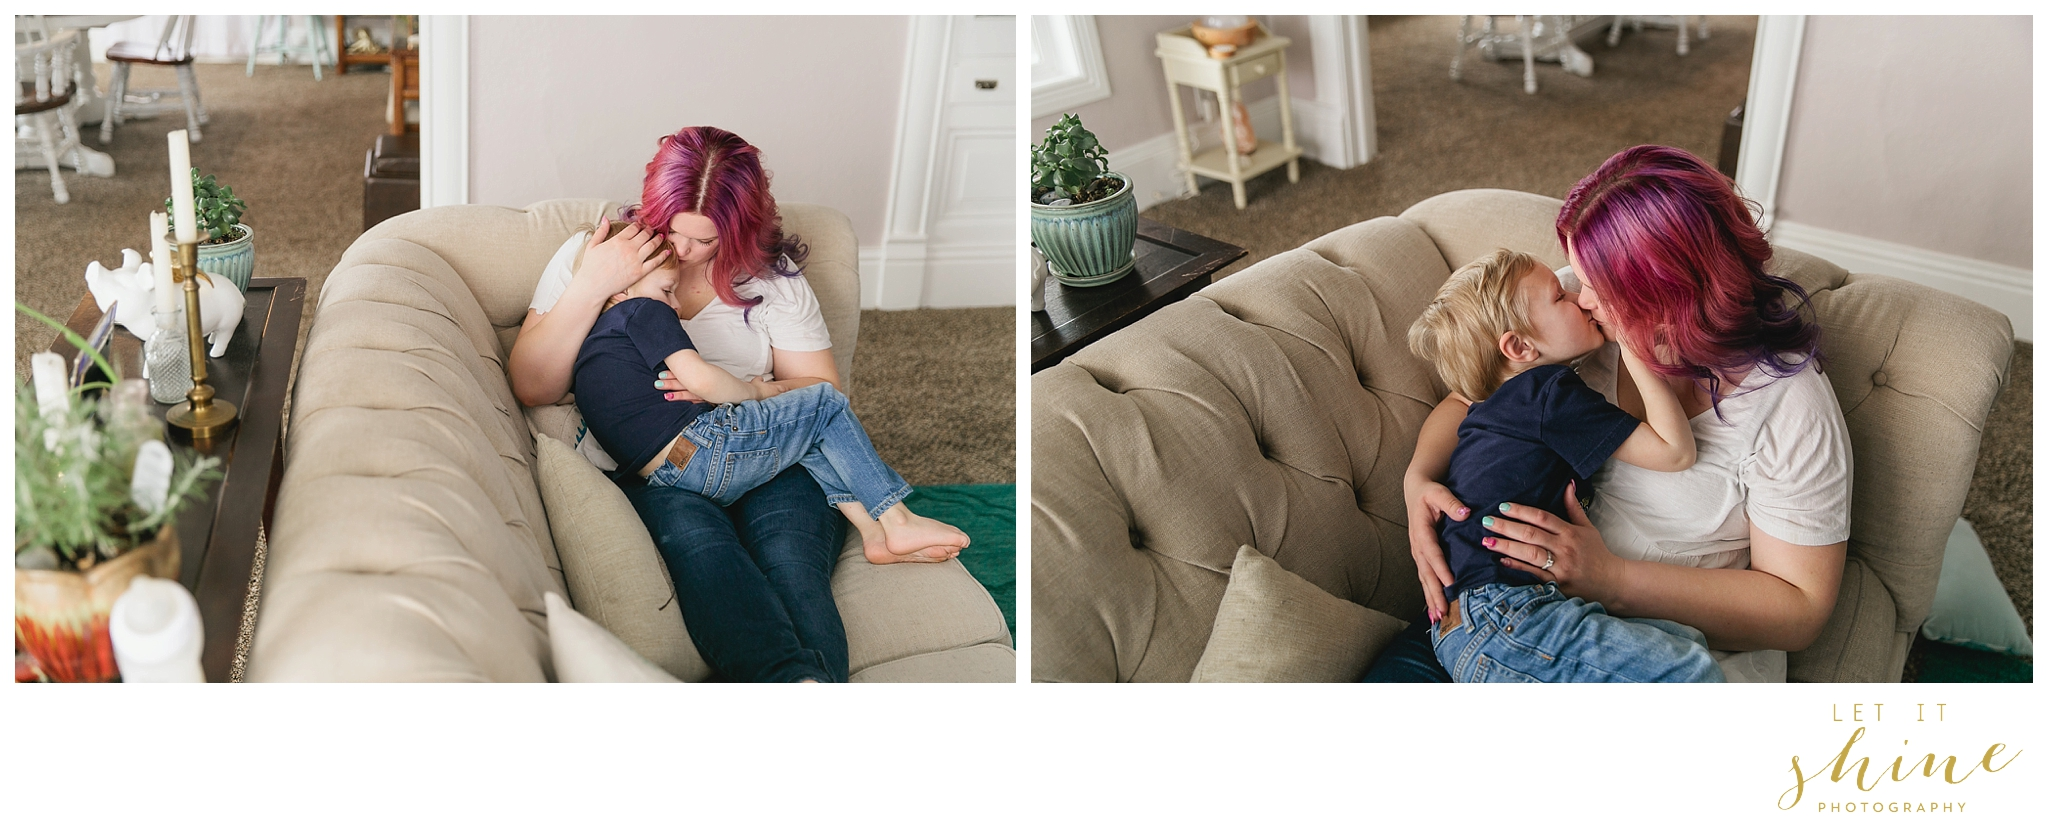 Lifestyle Family In Home Session Photographer Woodford-7280.jpg